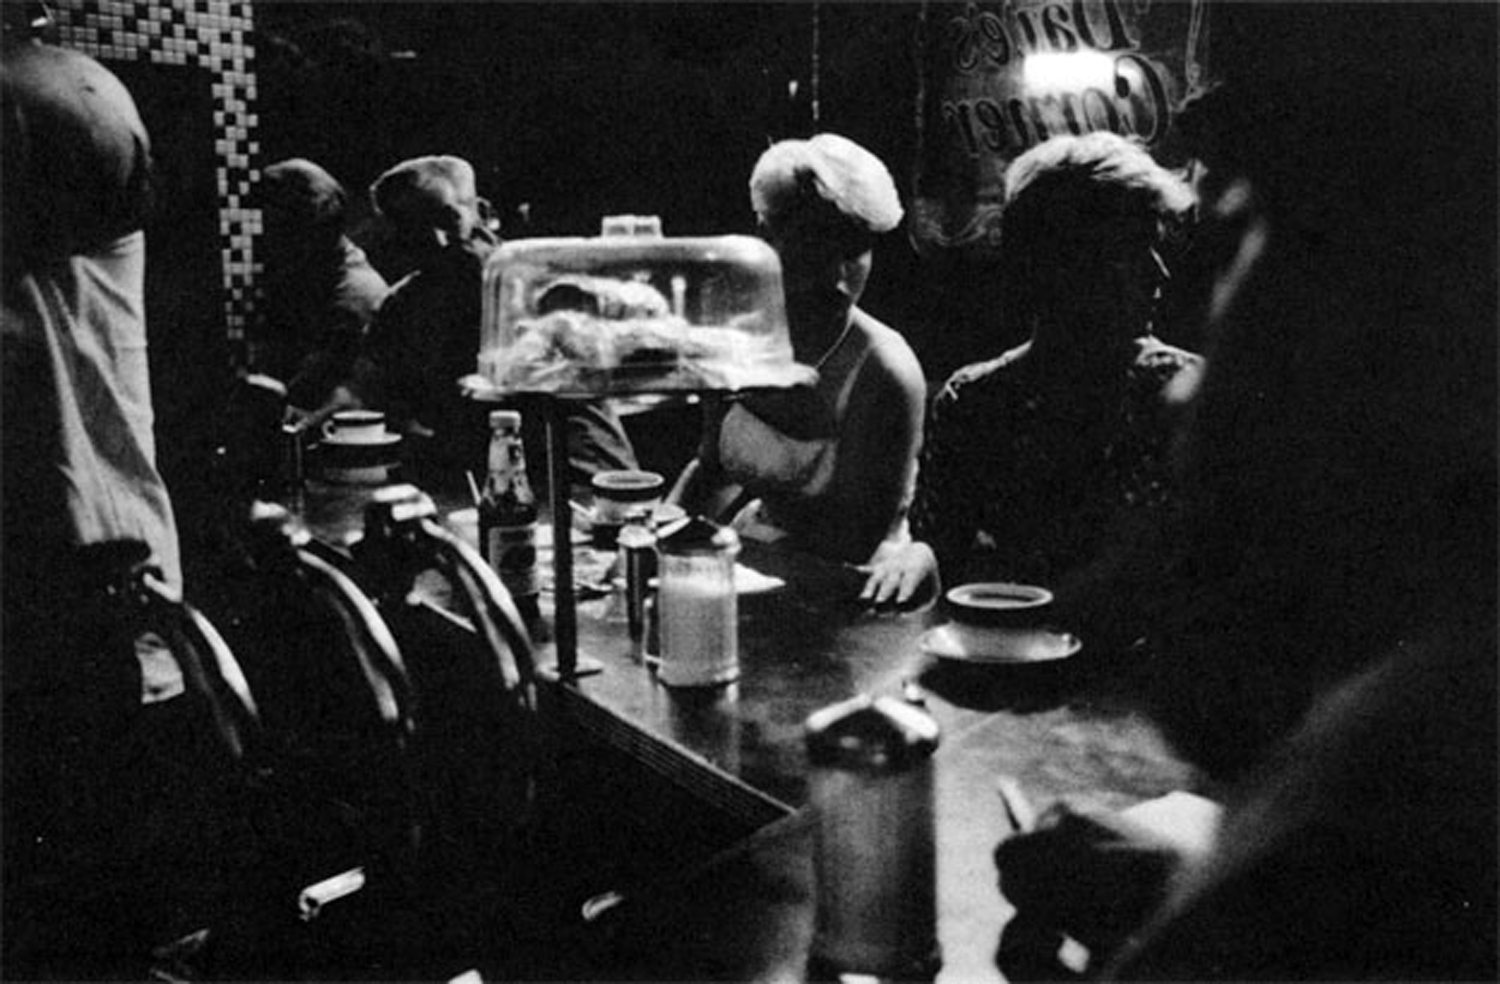 A late night at Dave's Corner, an all-night coffee shop two blocks from the Mudd Club where nightclubbers mixed with nightshift workers. Photo by George Shustowicz